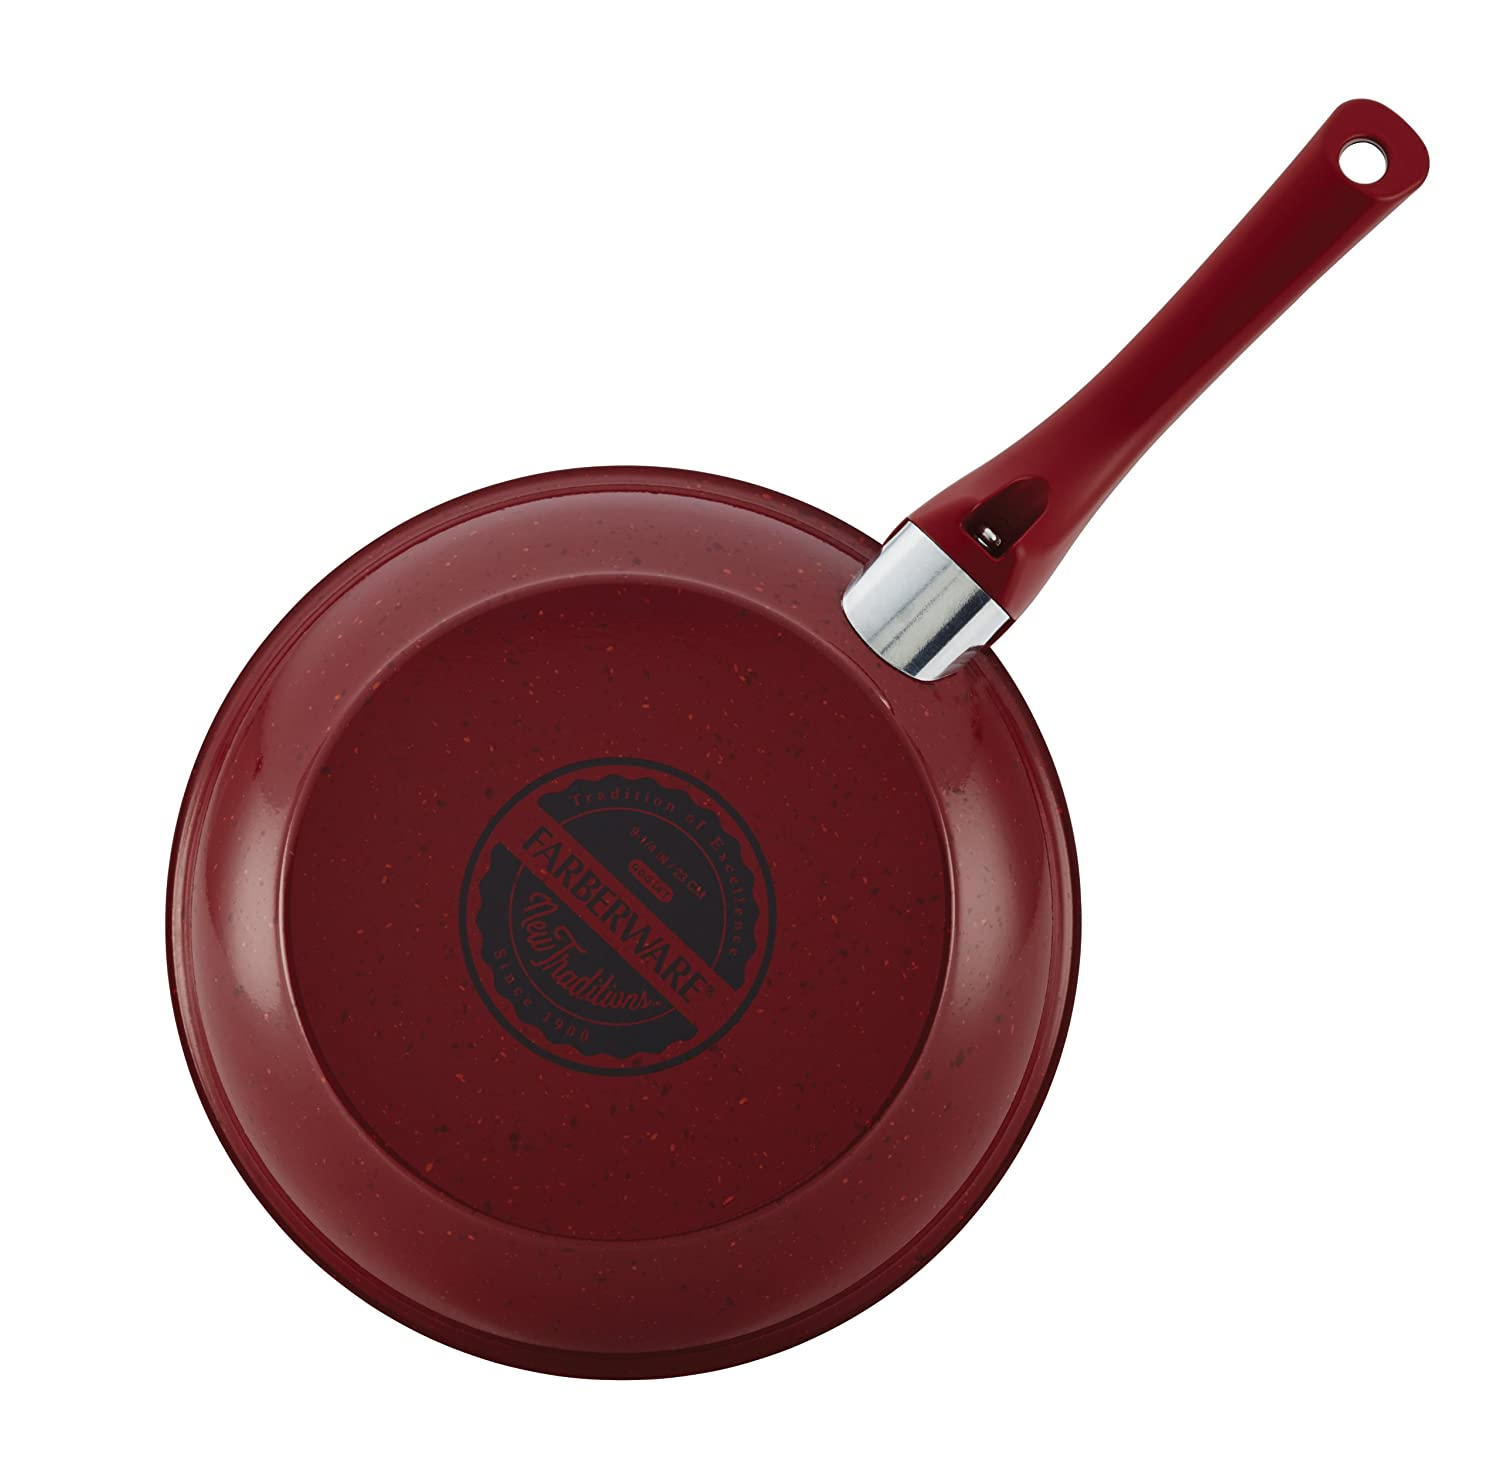 Red with Red Handles Farberware New Traditions Speckled Aluminum Nonstick 12-Piece Cookware Set